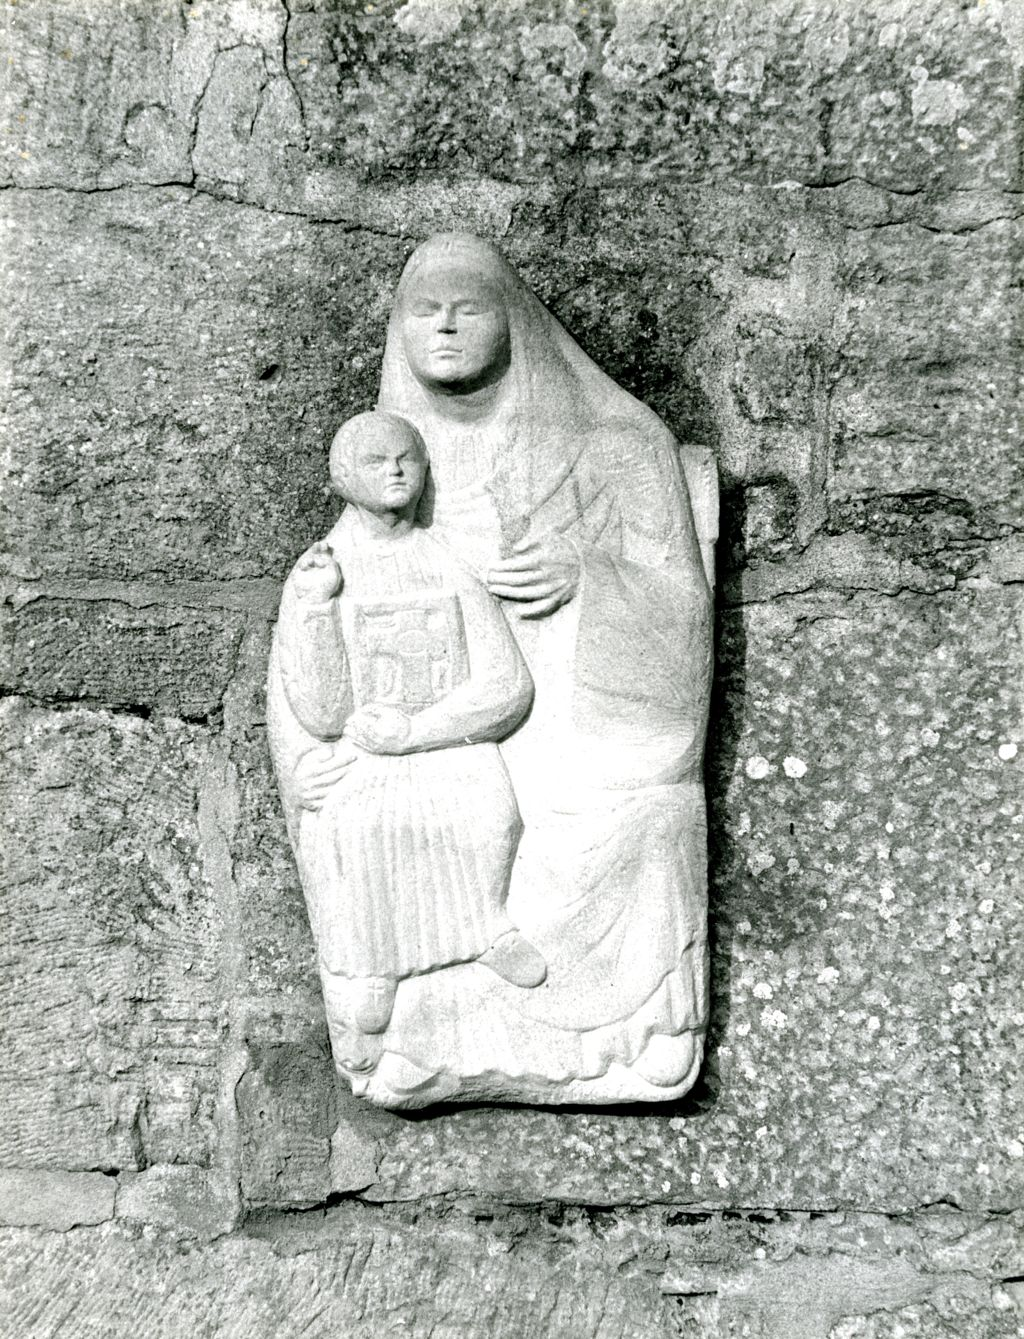 Madonna and Child carving.